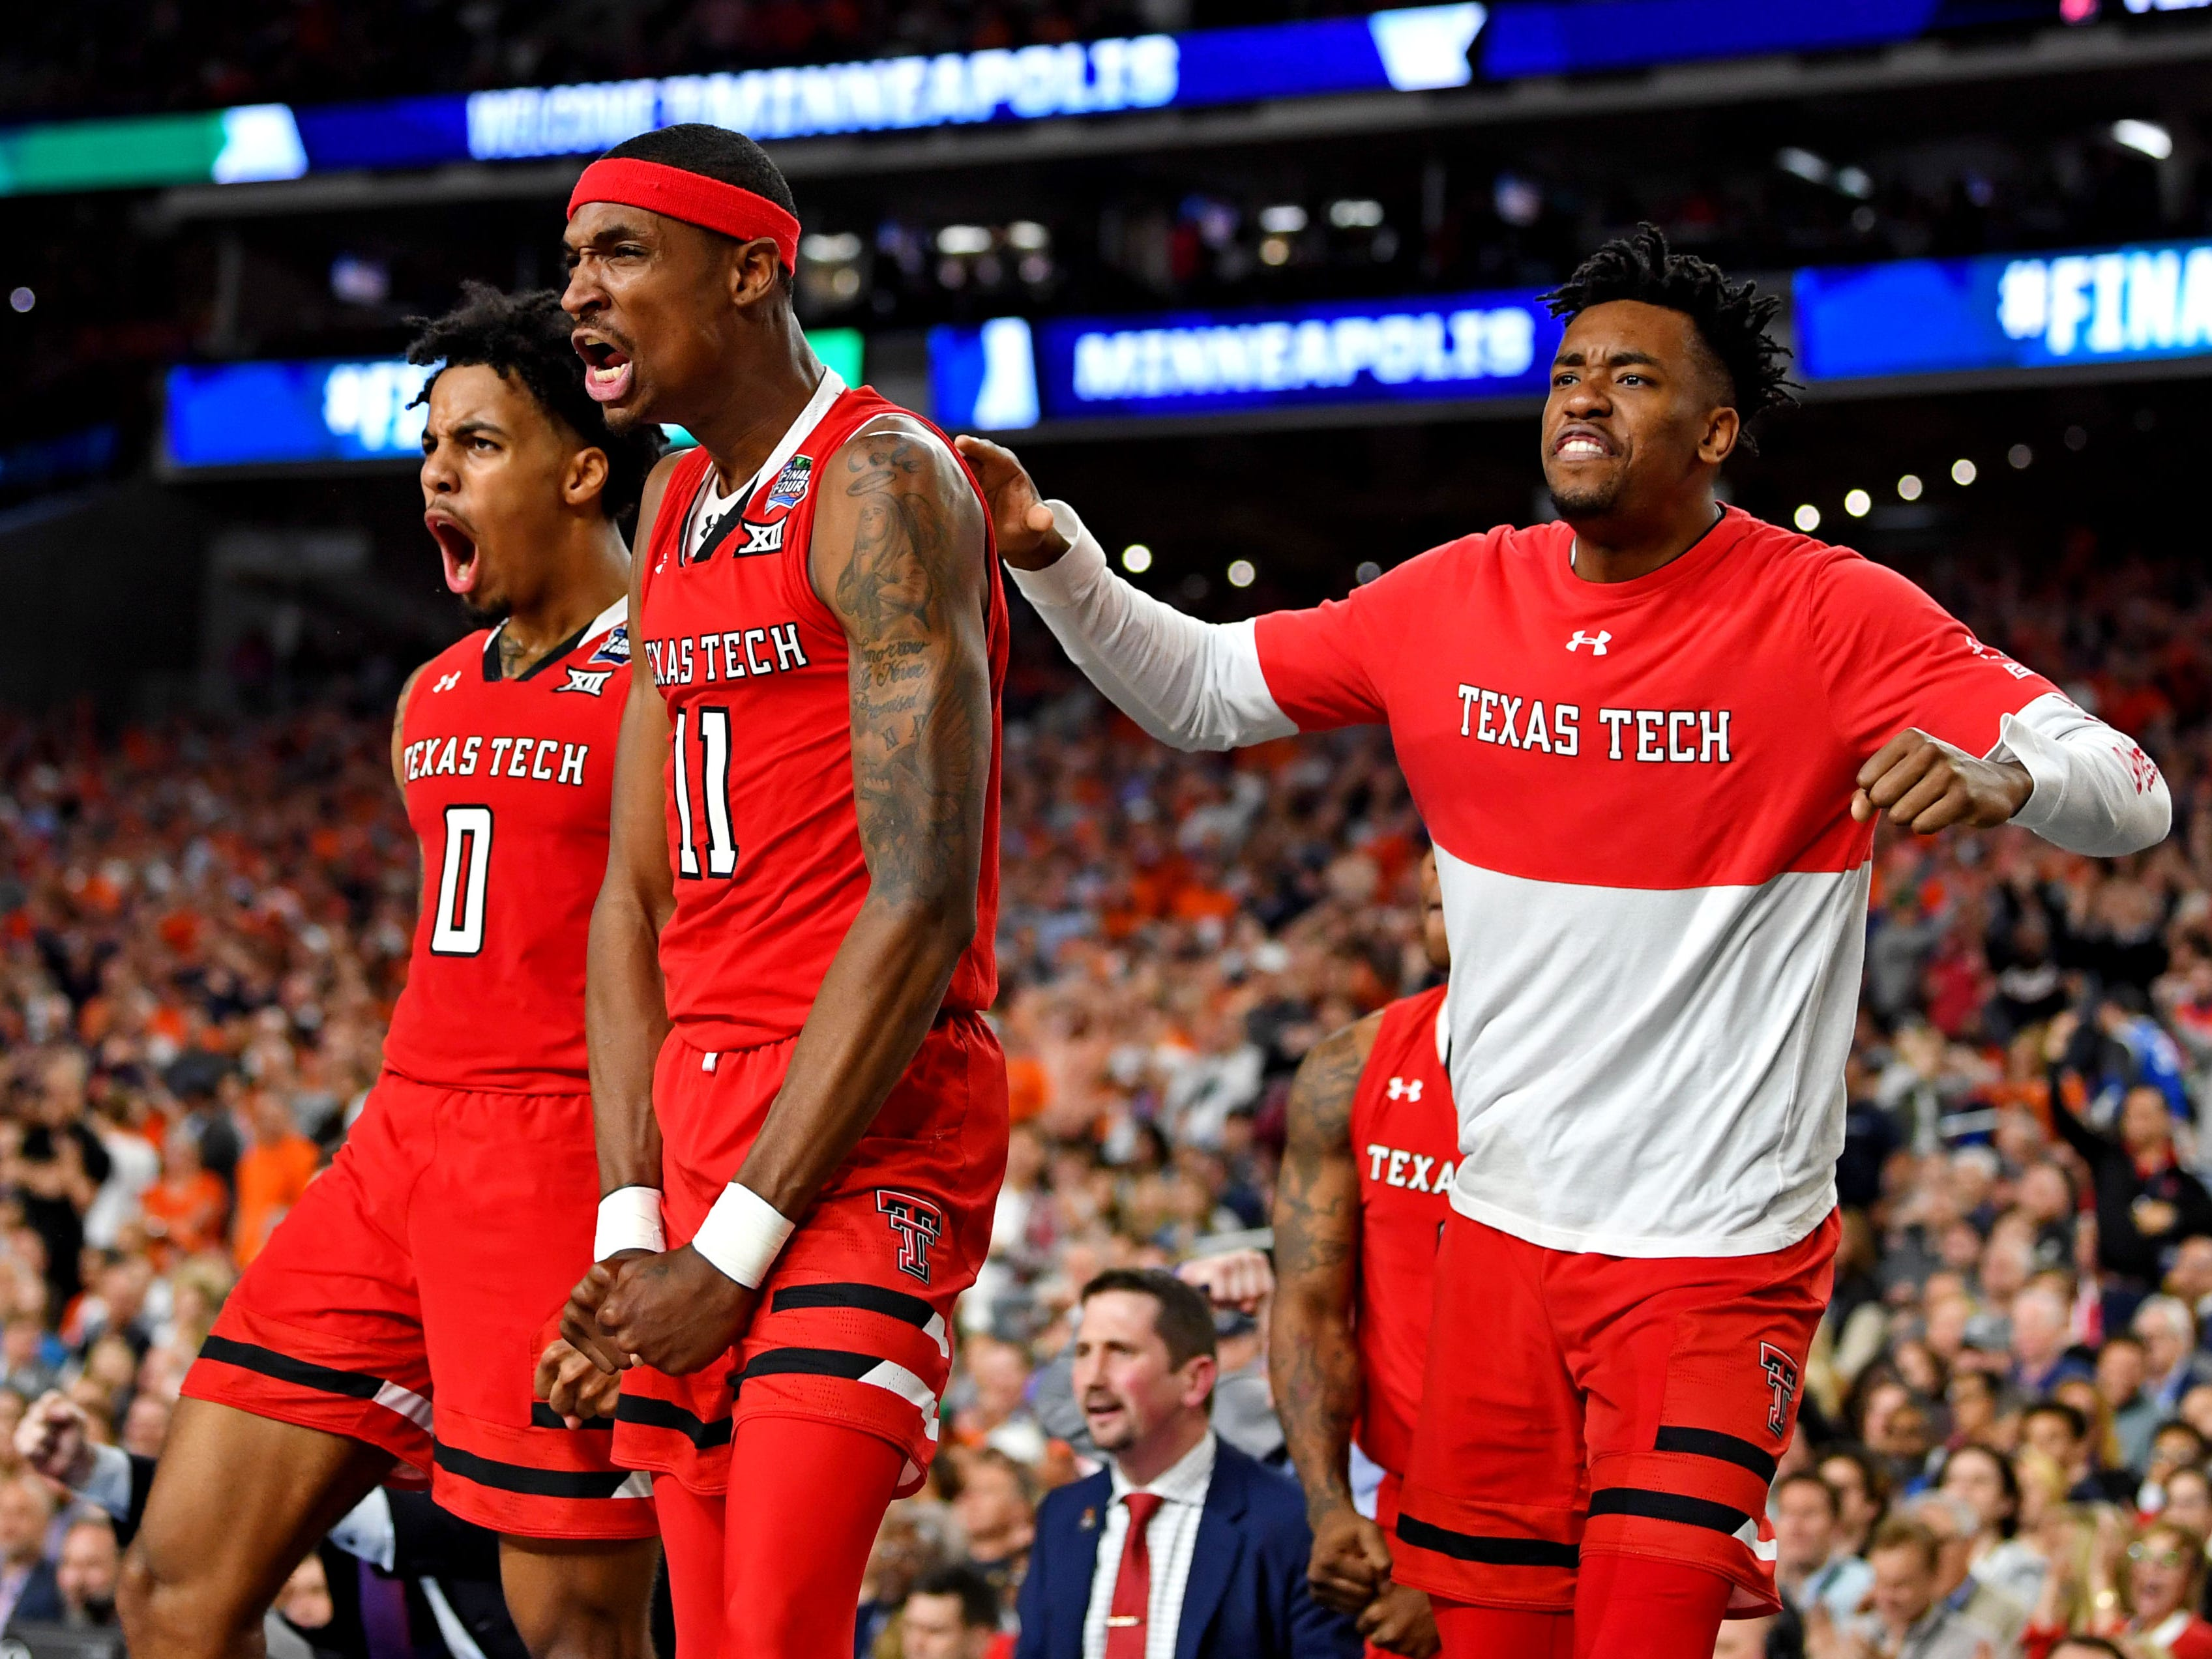 Texas Tech's Tariq Owens (11) and Kyler Edwards (0) react from the bench during the second half against Virginia.